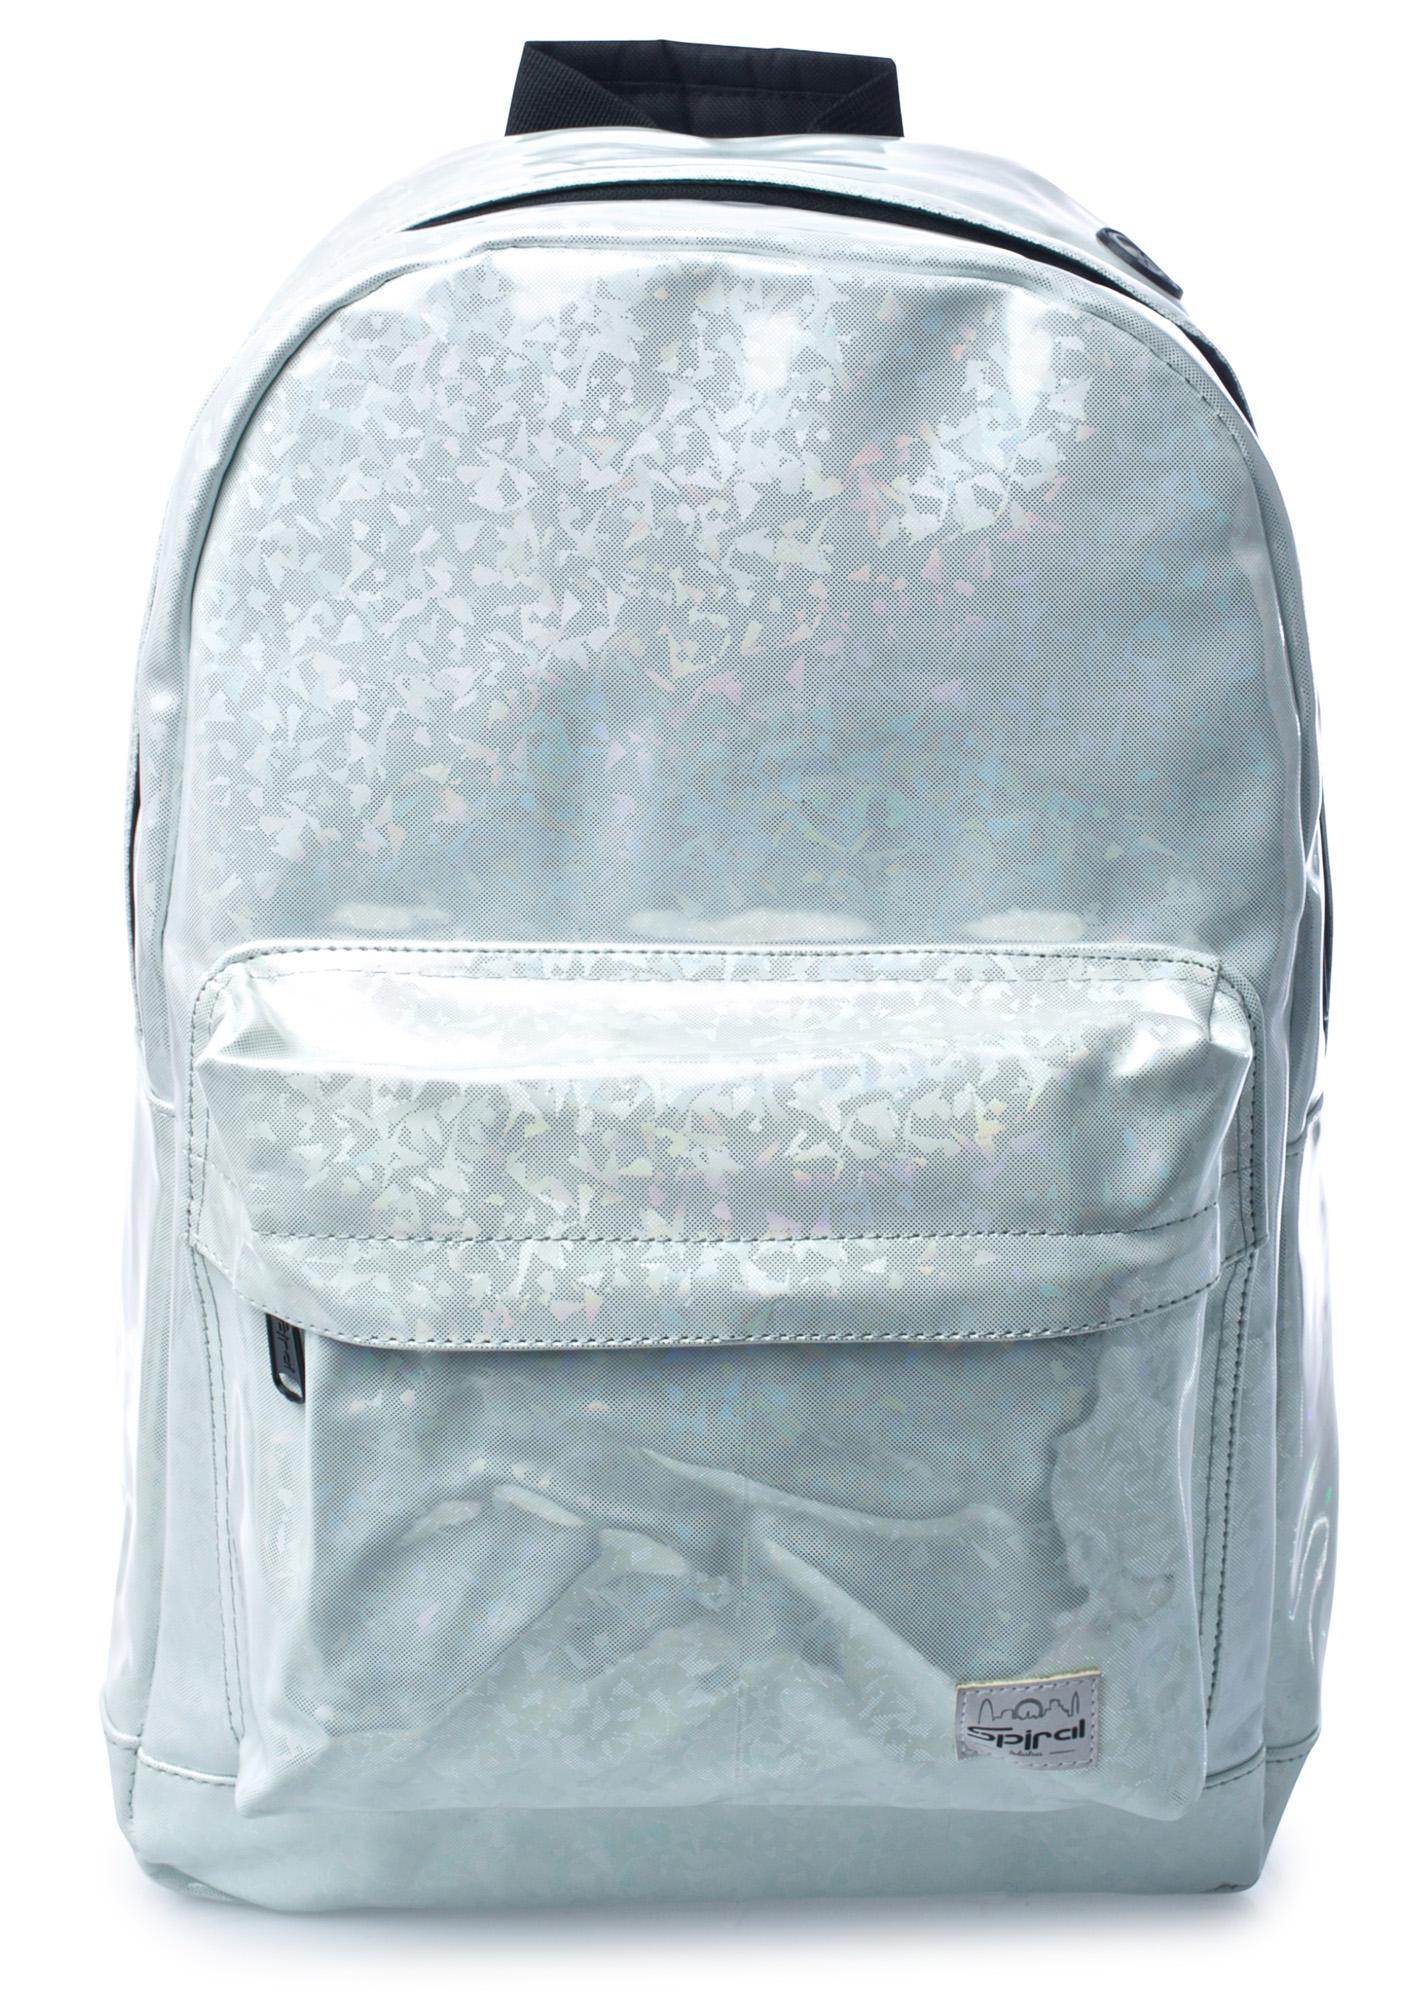 Spiral UK White Diamond OG Backpack